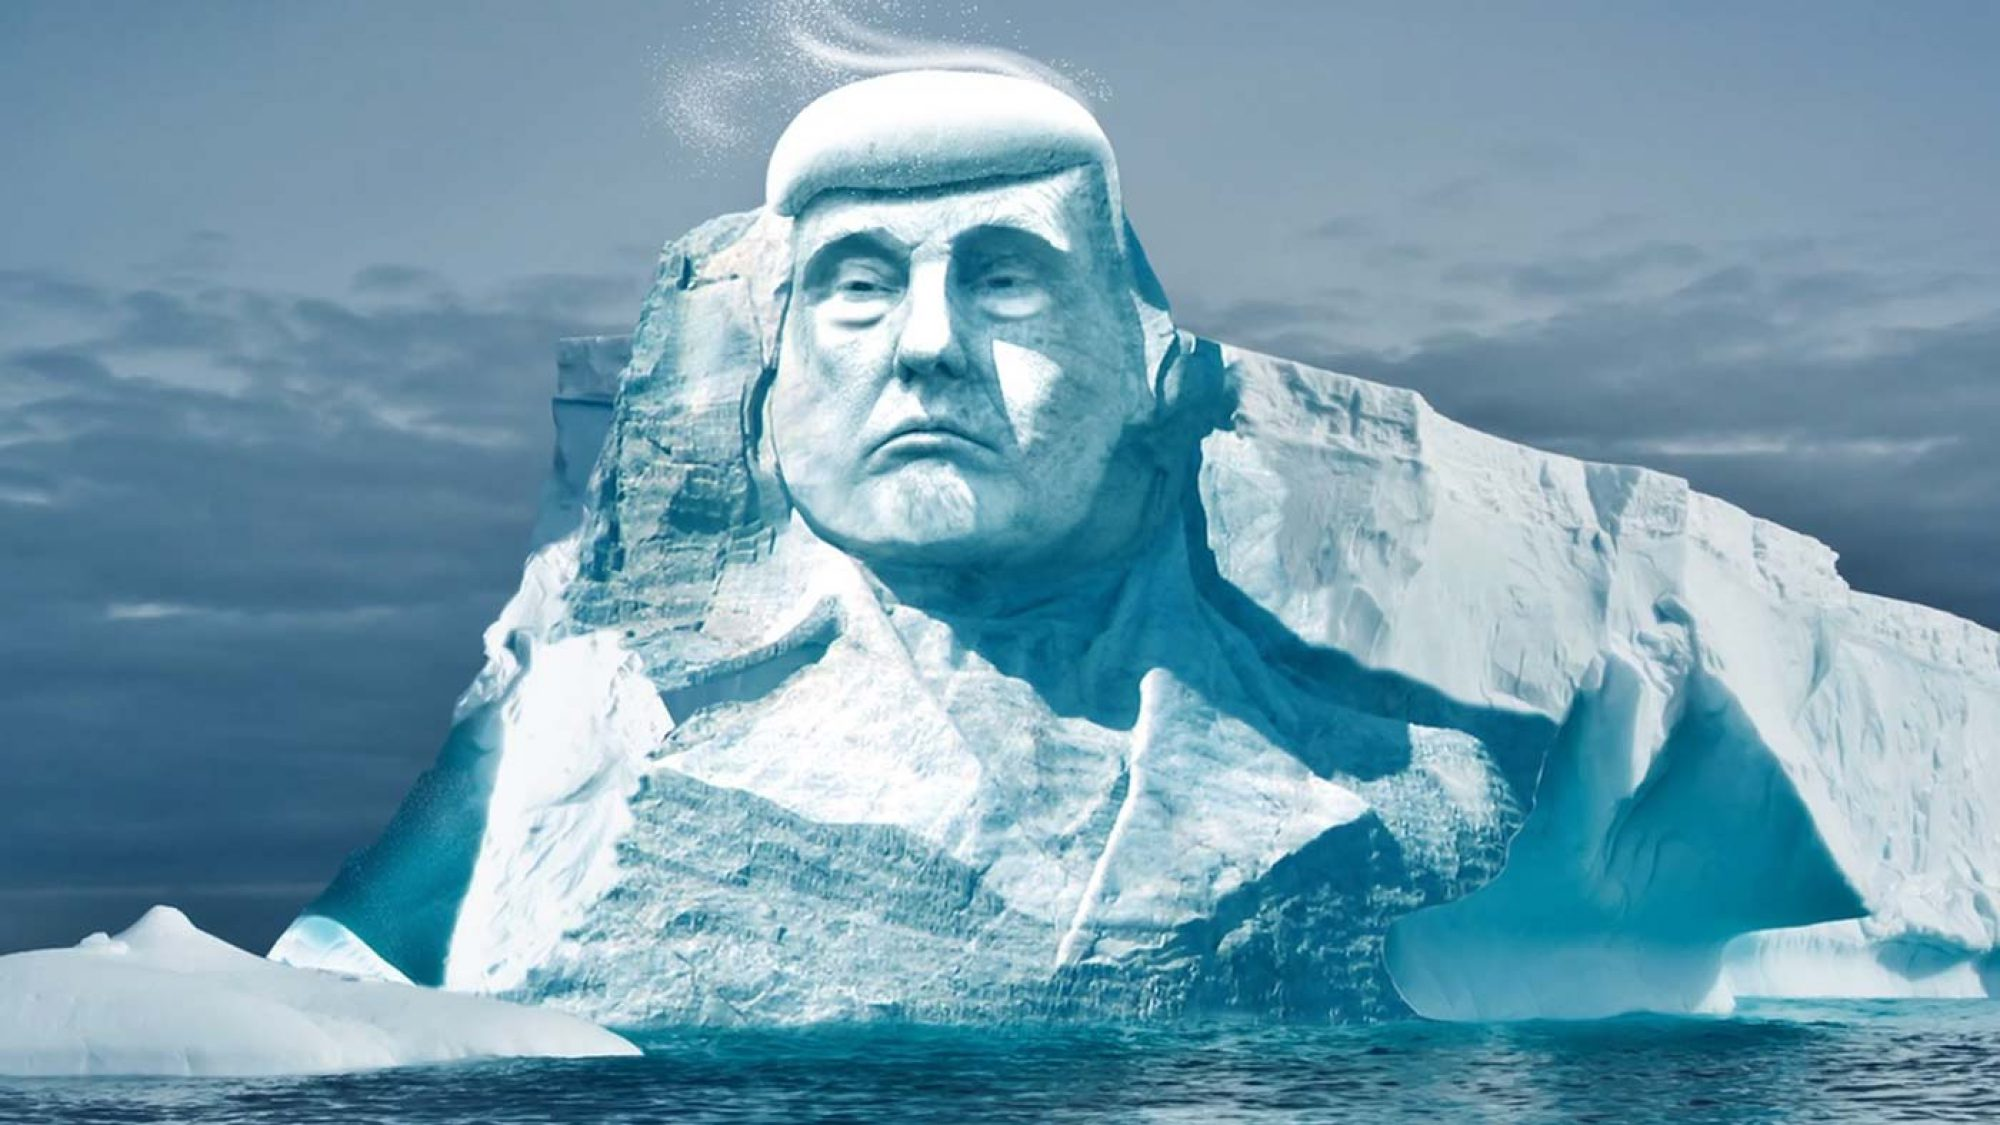 project trumpmore: Climate Change and the Challenge of Communication